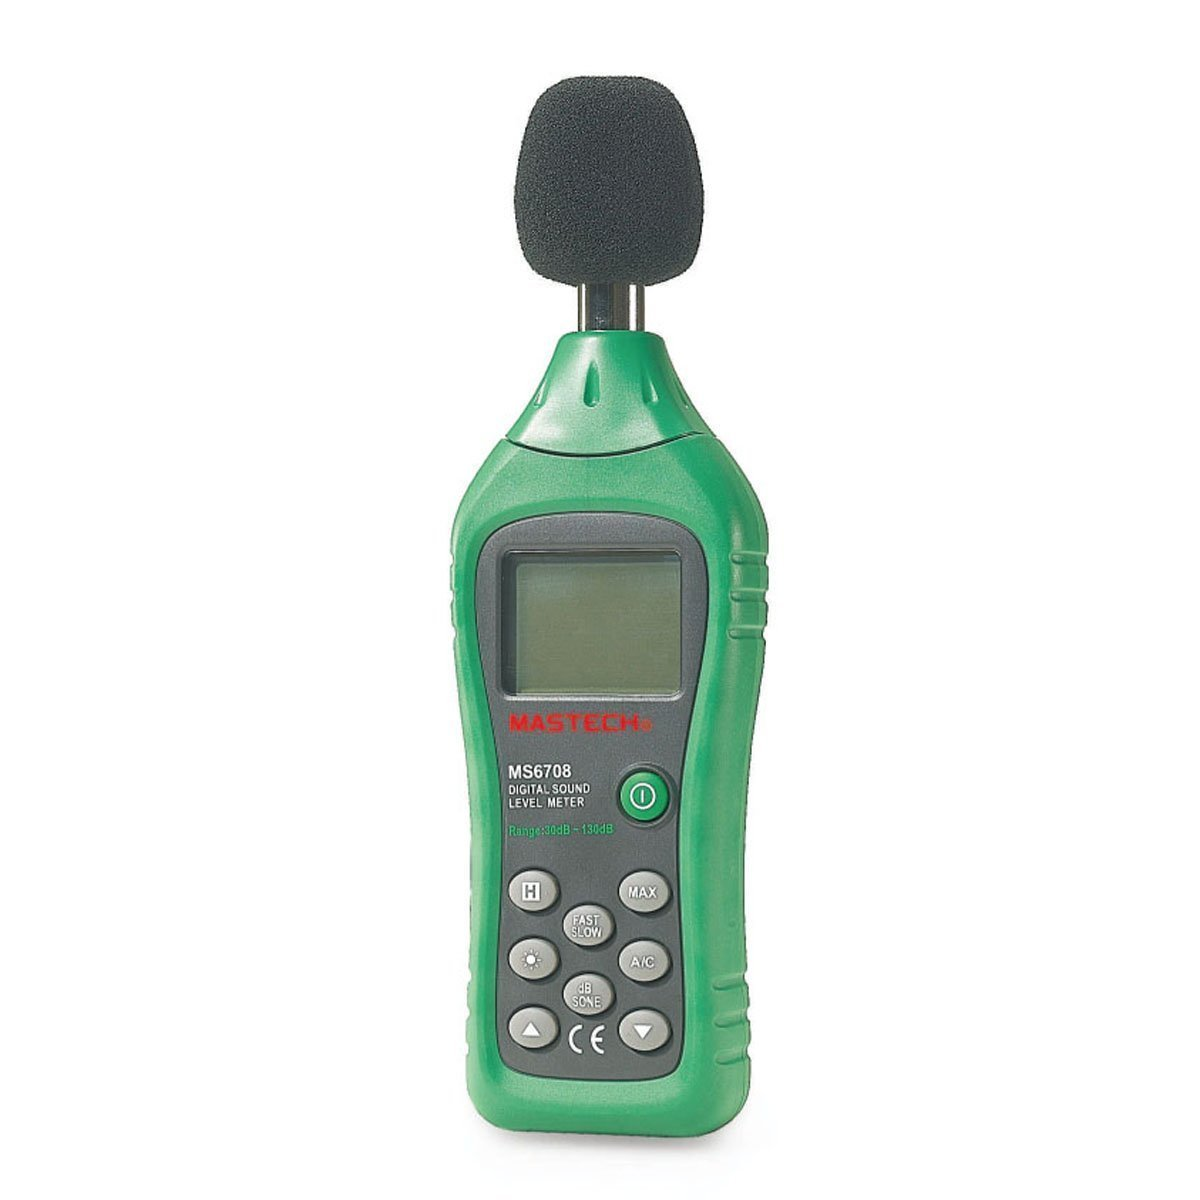 MasTech MS6708 Digital sound level meter / noise meter, sound tester, decibel meter, noise meter